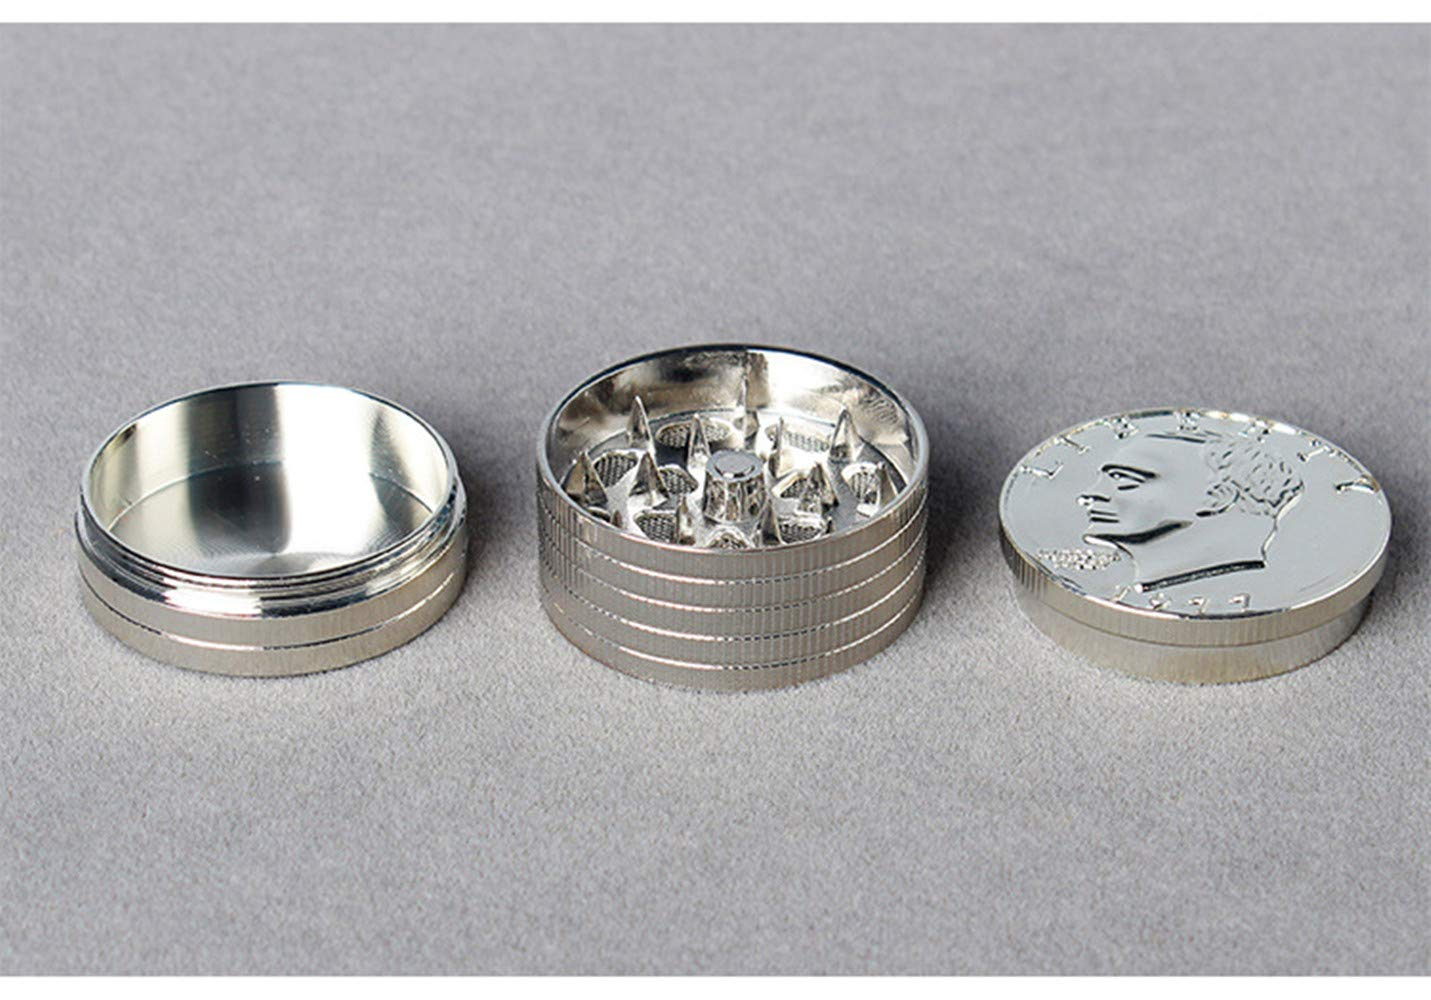 tobacco spice crusher NEW SILVER COIN SHAPED TWISTING METAL HAND GRINDER herbs